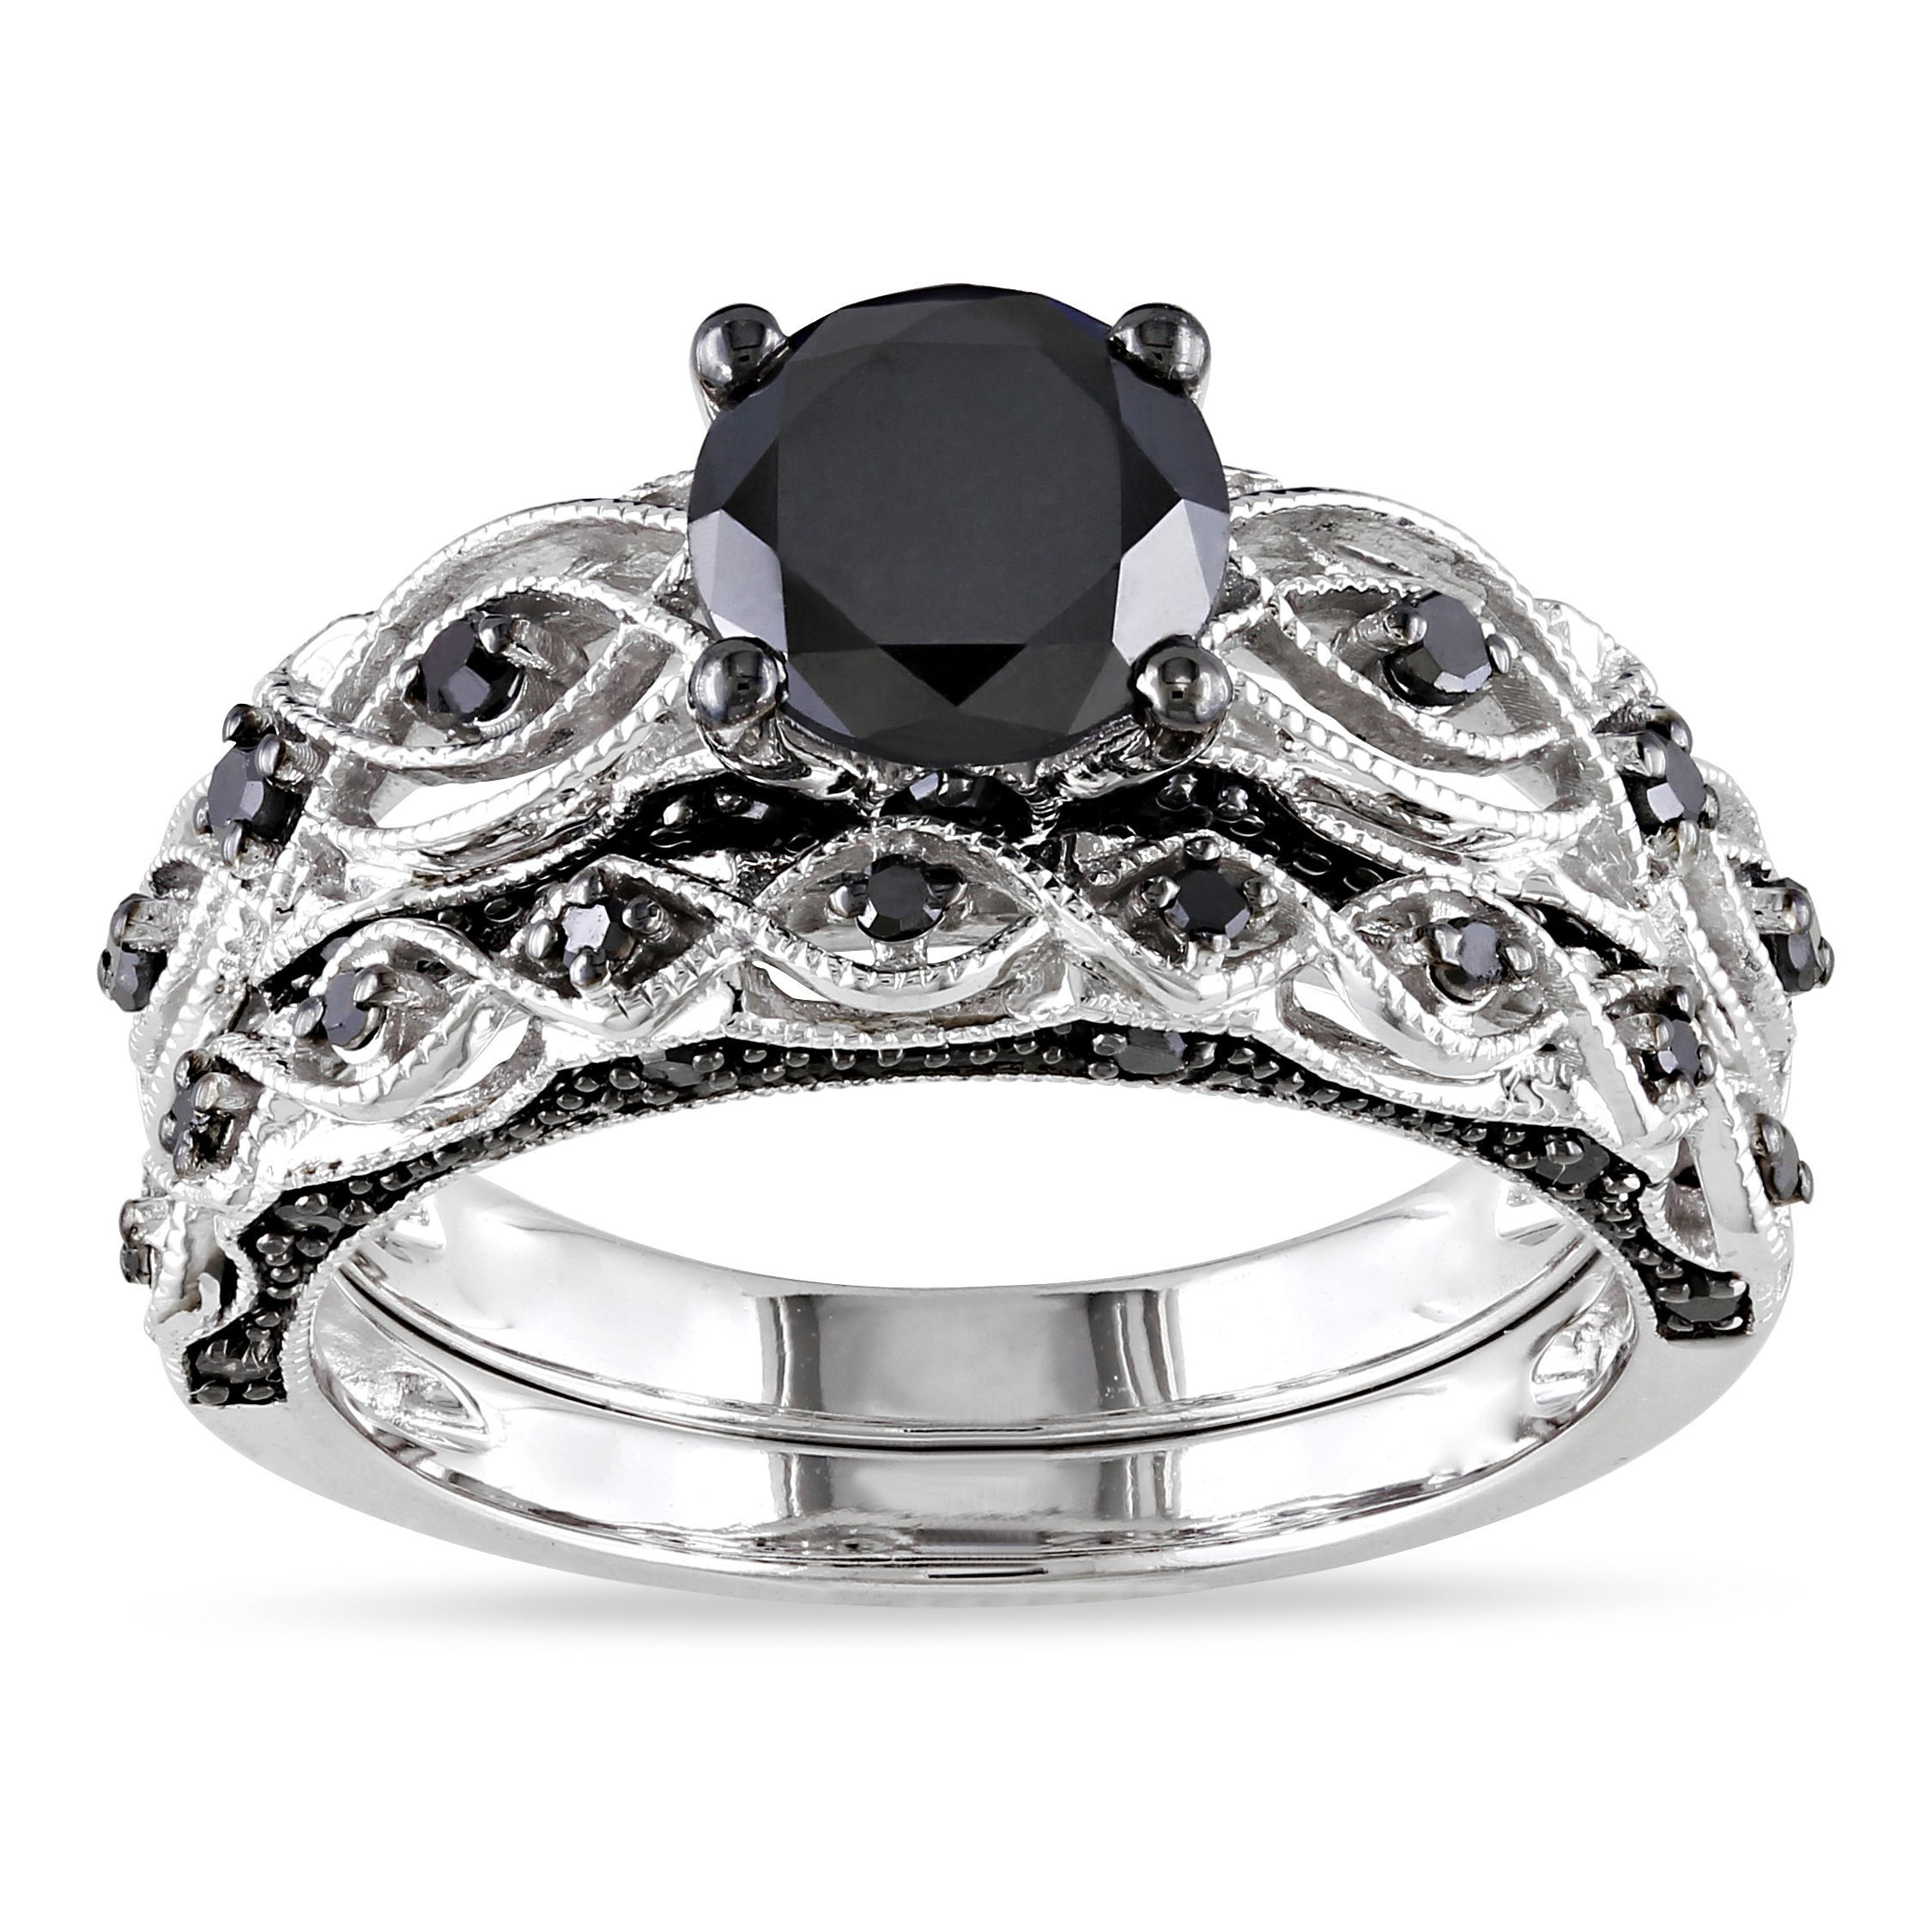 Miadora 10k White Gold 1 3/8ct TDW Black Diamond Infinity